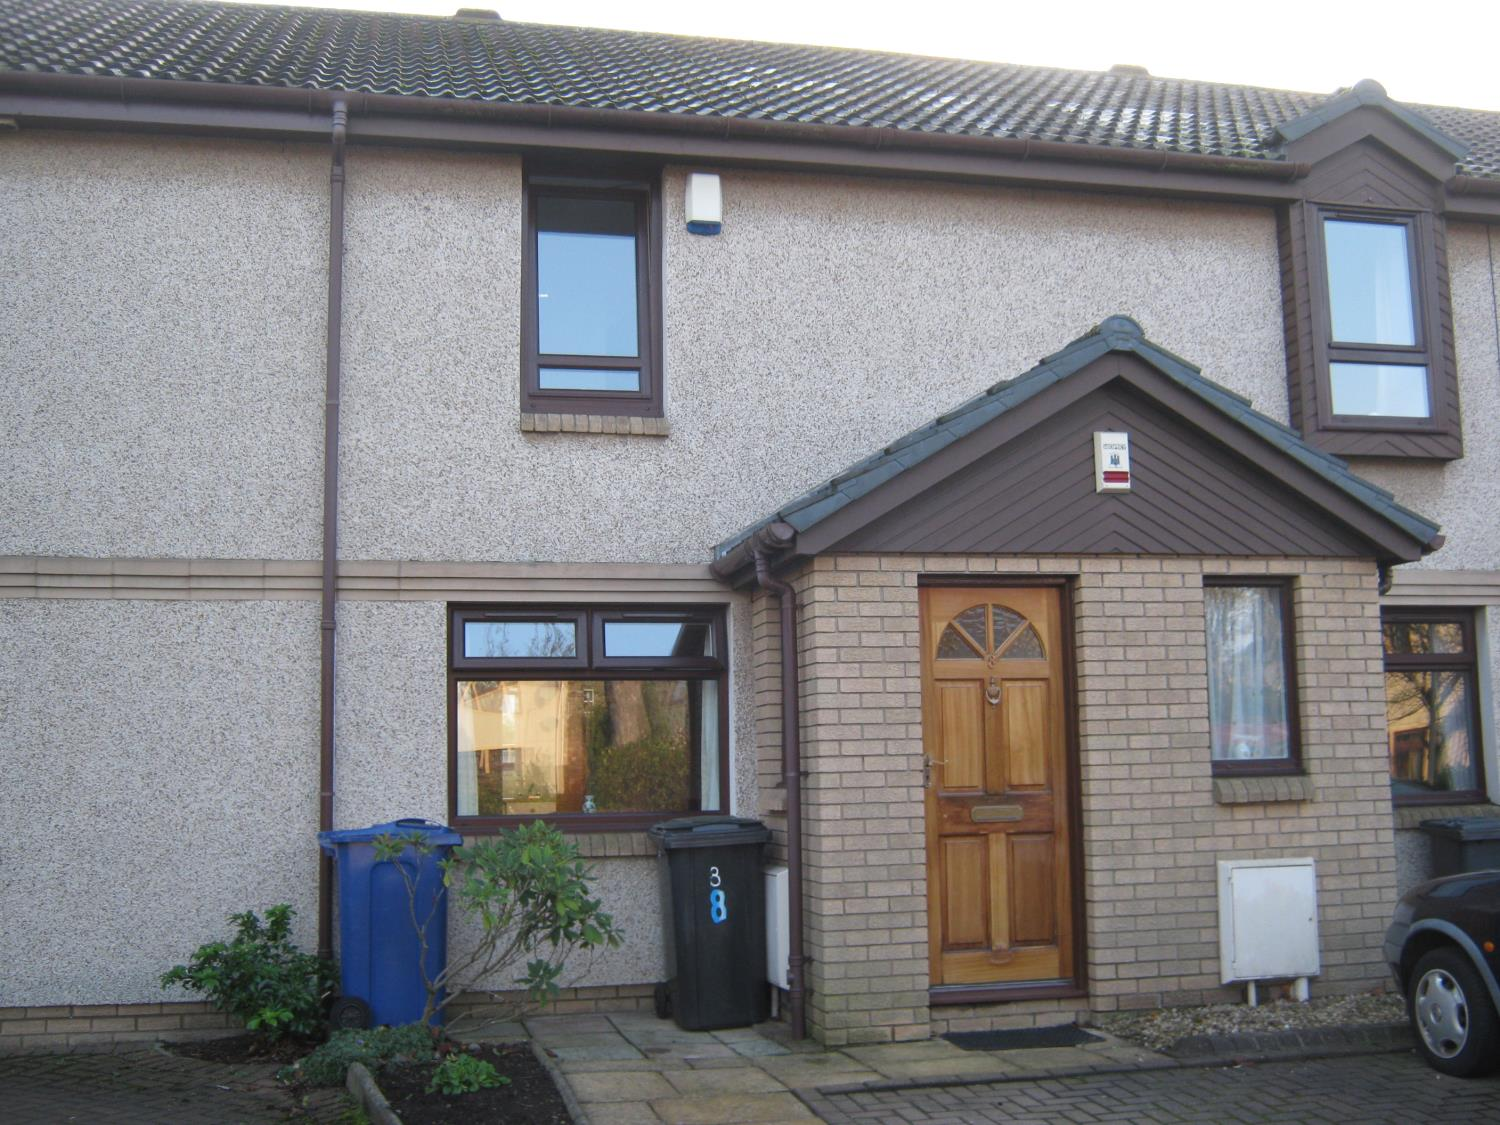 View property for rent Westfield Drive, Eskbank